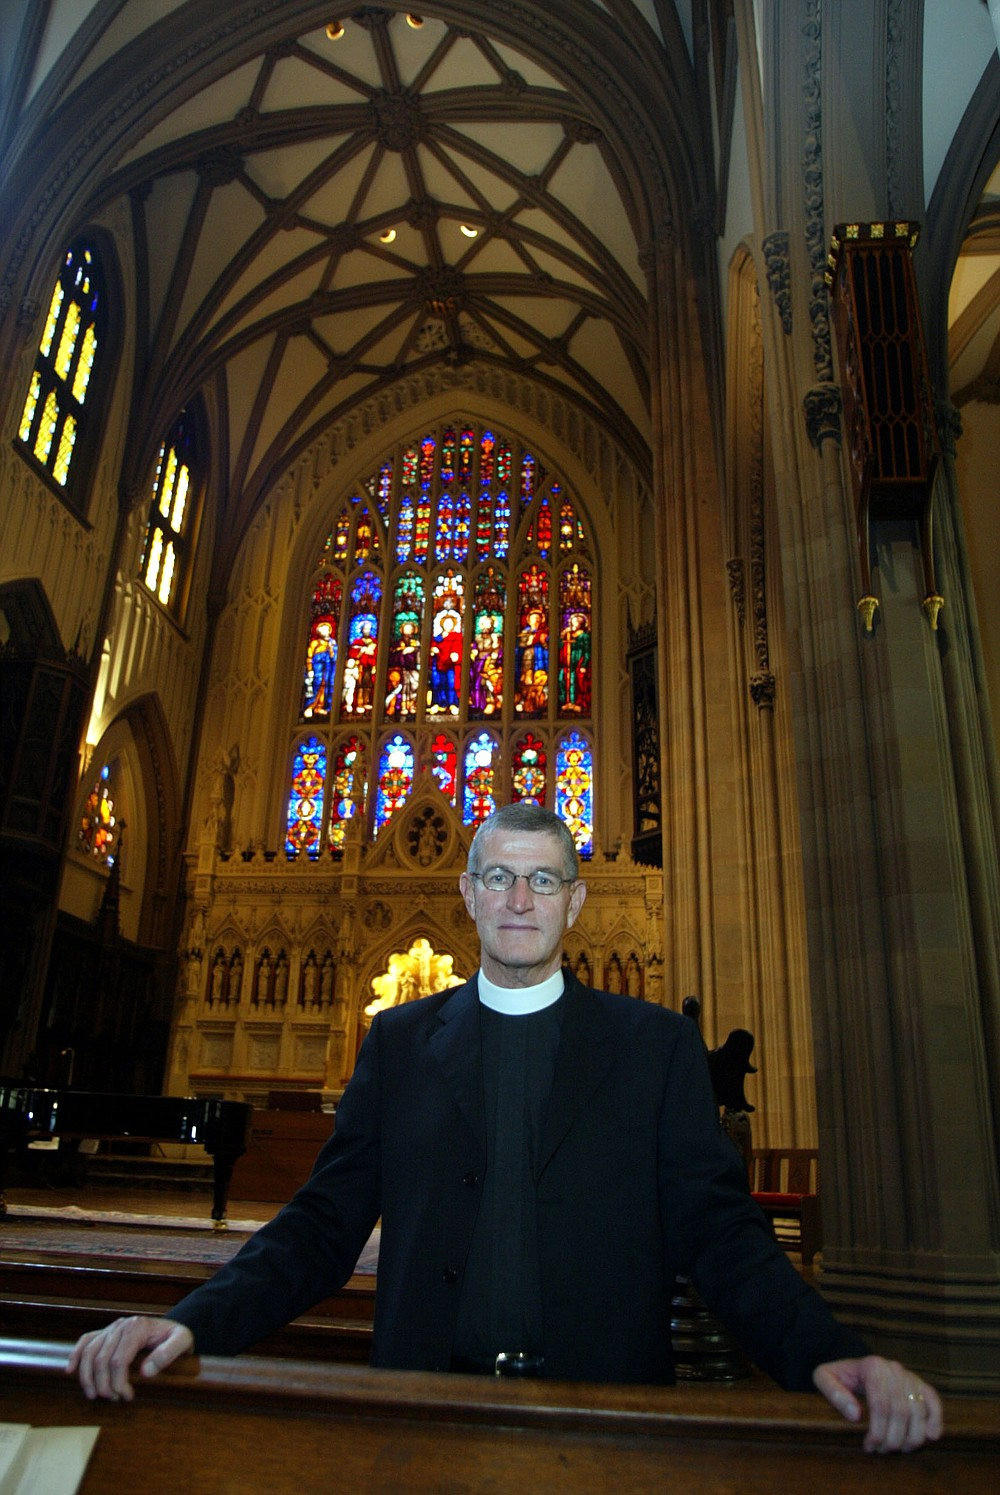 The Rev. Stuart Hoke, formerly of Blytheville, in Trinity Church in New York City in September, 2002. Hoke, then the executive assistant to the Rector of The Parish of Trinty Church of New York City, delivered a church service to those seeking refuge in Trinity Church, as the twin towers of the World Trade Center burned some 200 yards away. They were ordered to evacuate after the first tower collapsed. (Arkansas Democrat-Gazette/Rick McFarland)